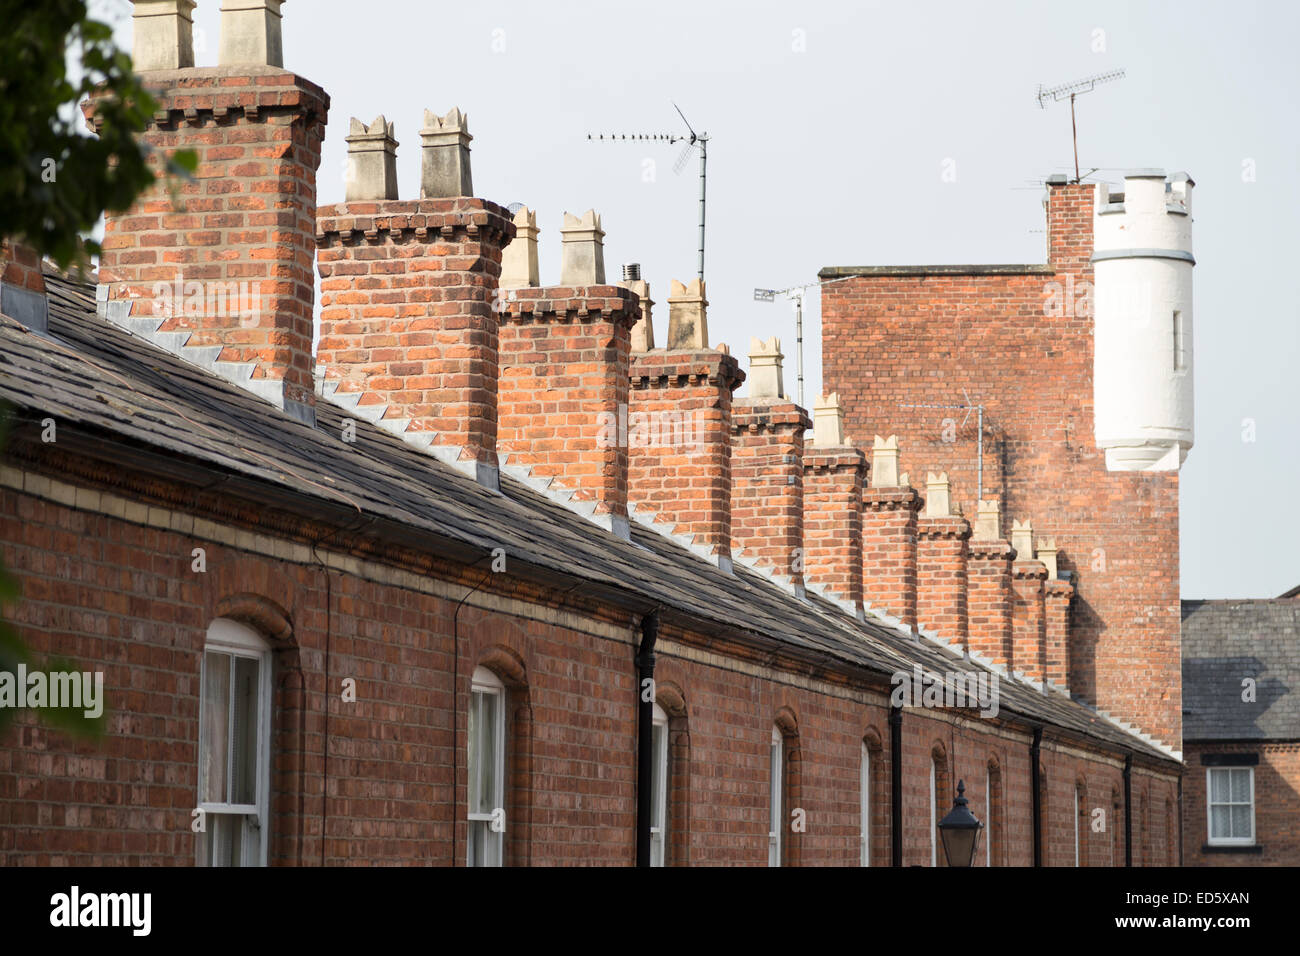 UK, Chester, a row of chimneys on houses with the last one looking like a castle turret. - Stock Image